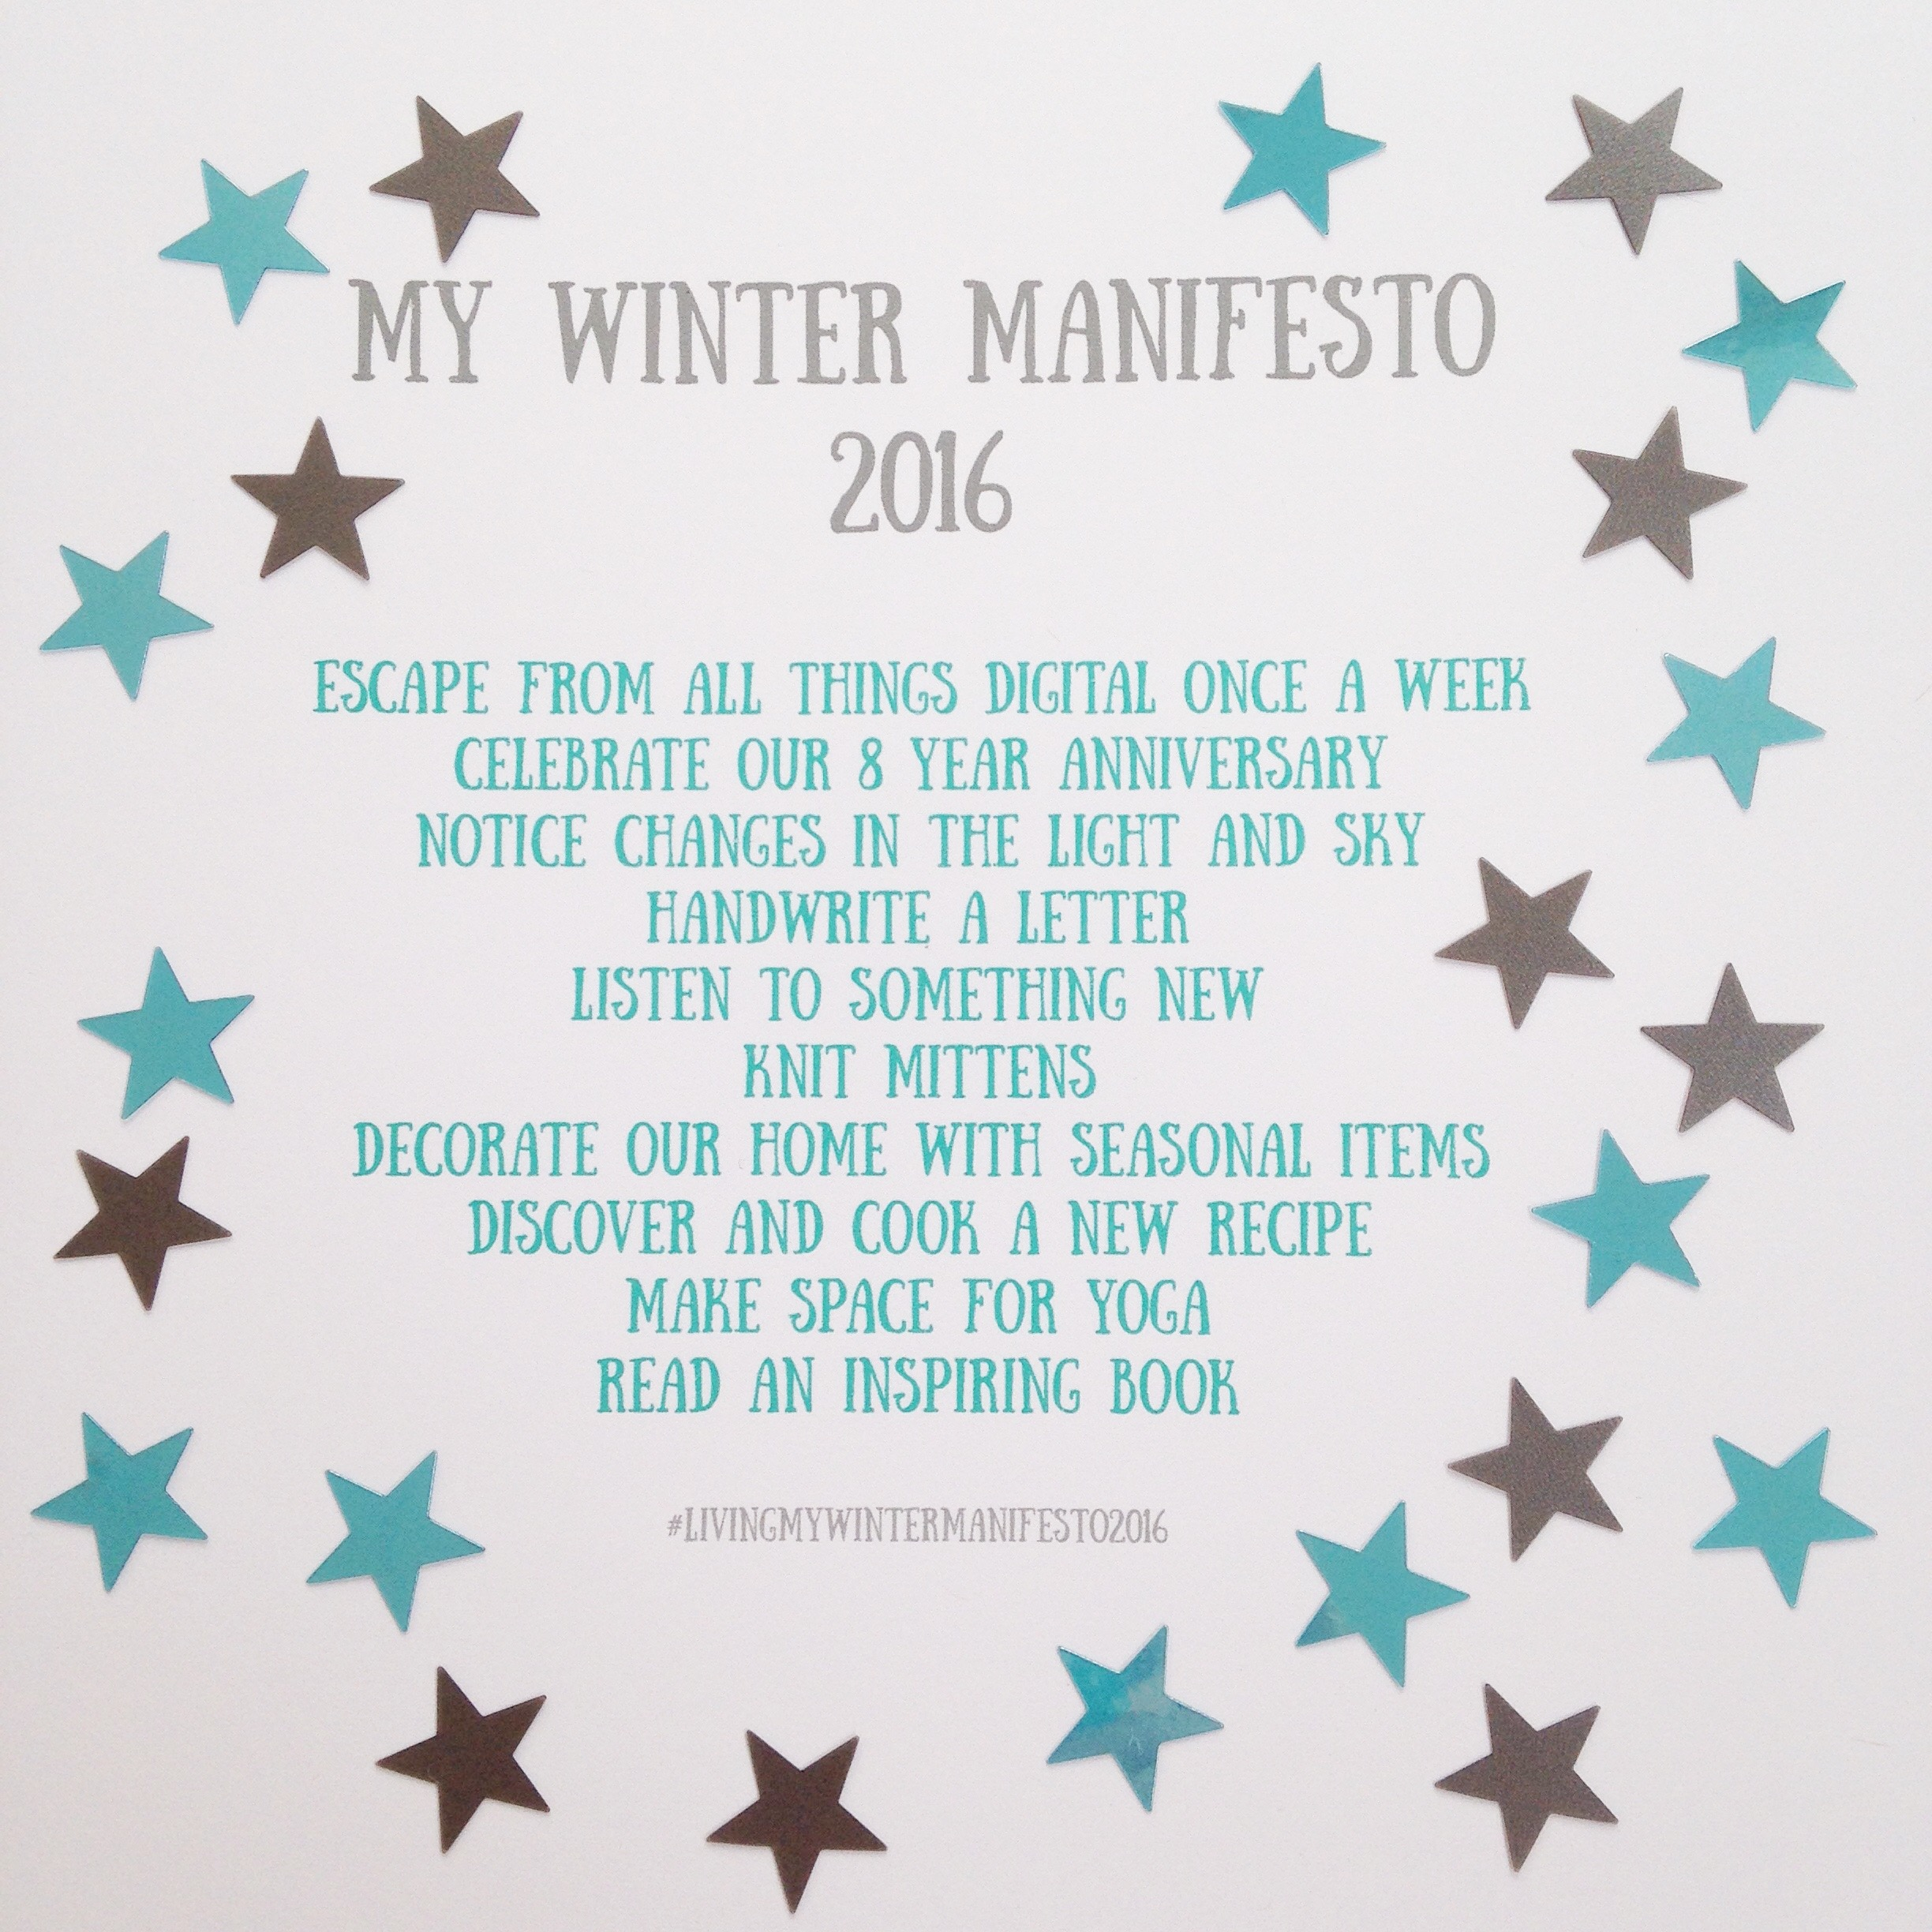 My Winter Manifesto 2016